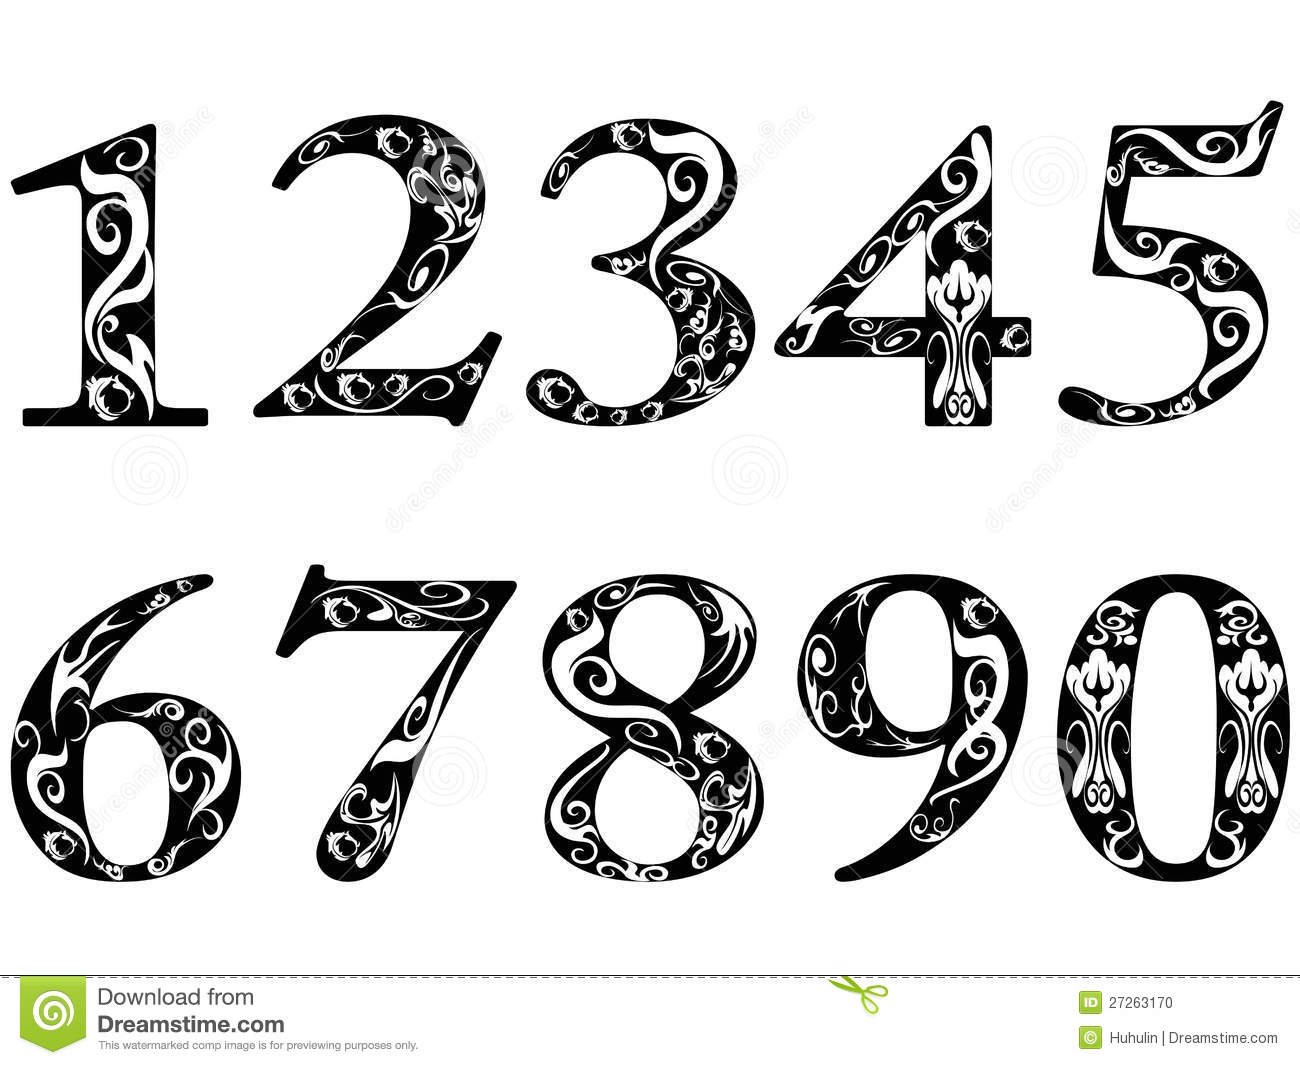 Graffiti Number Fonts For Tattoos